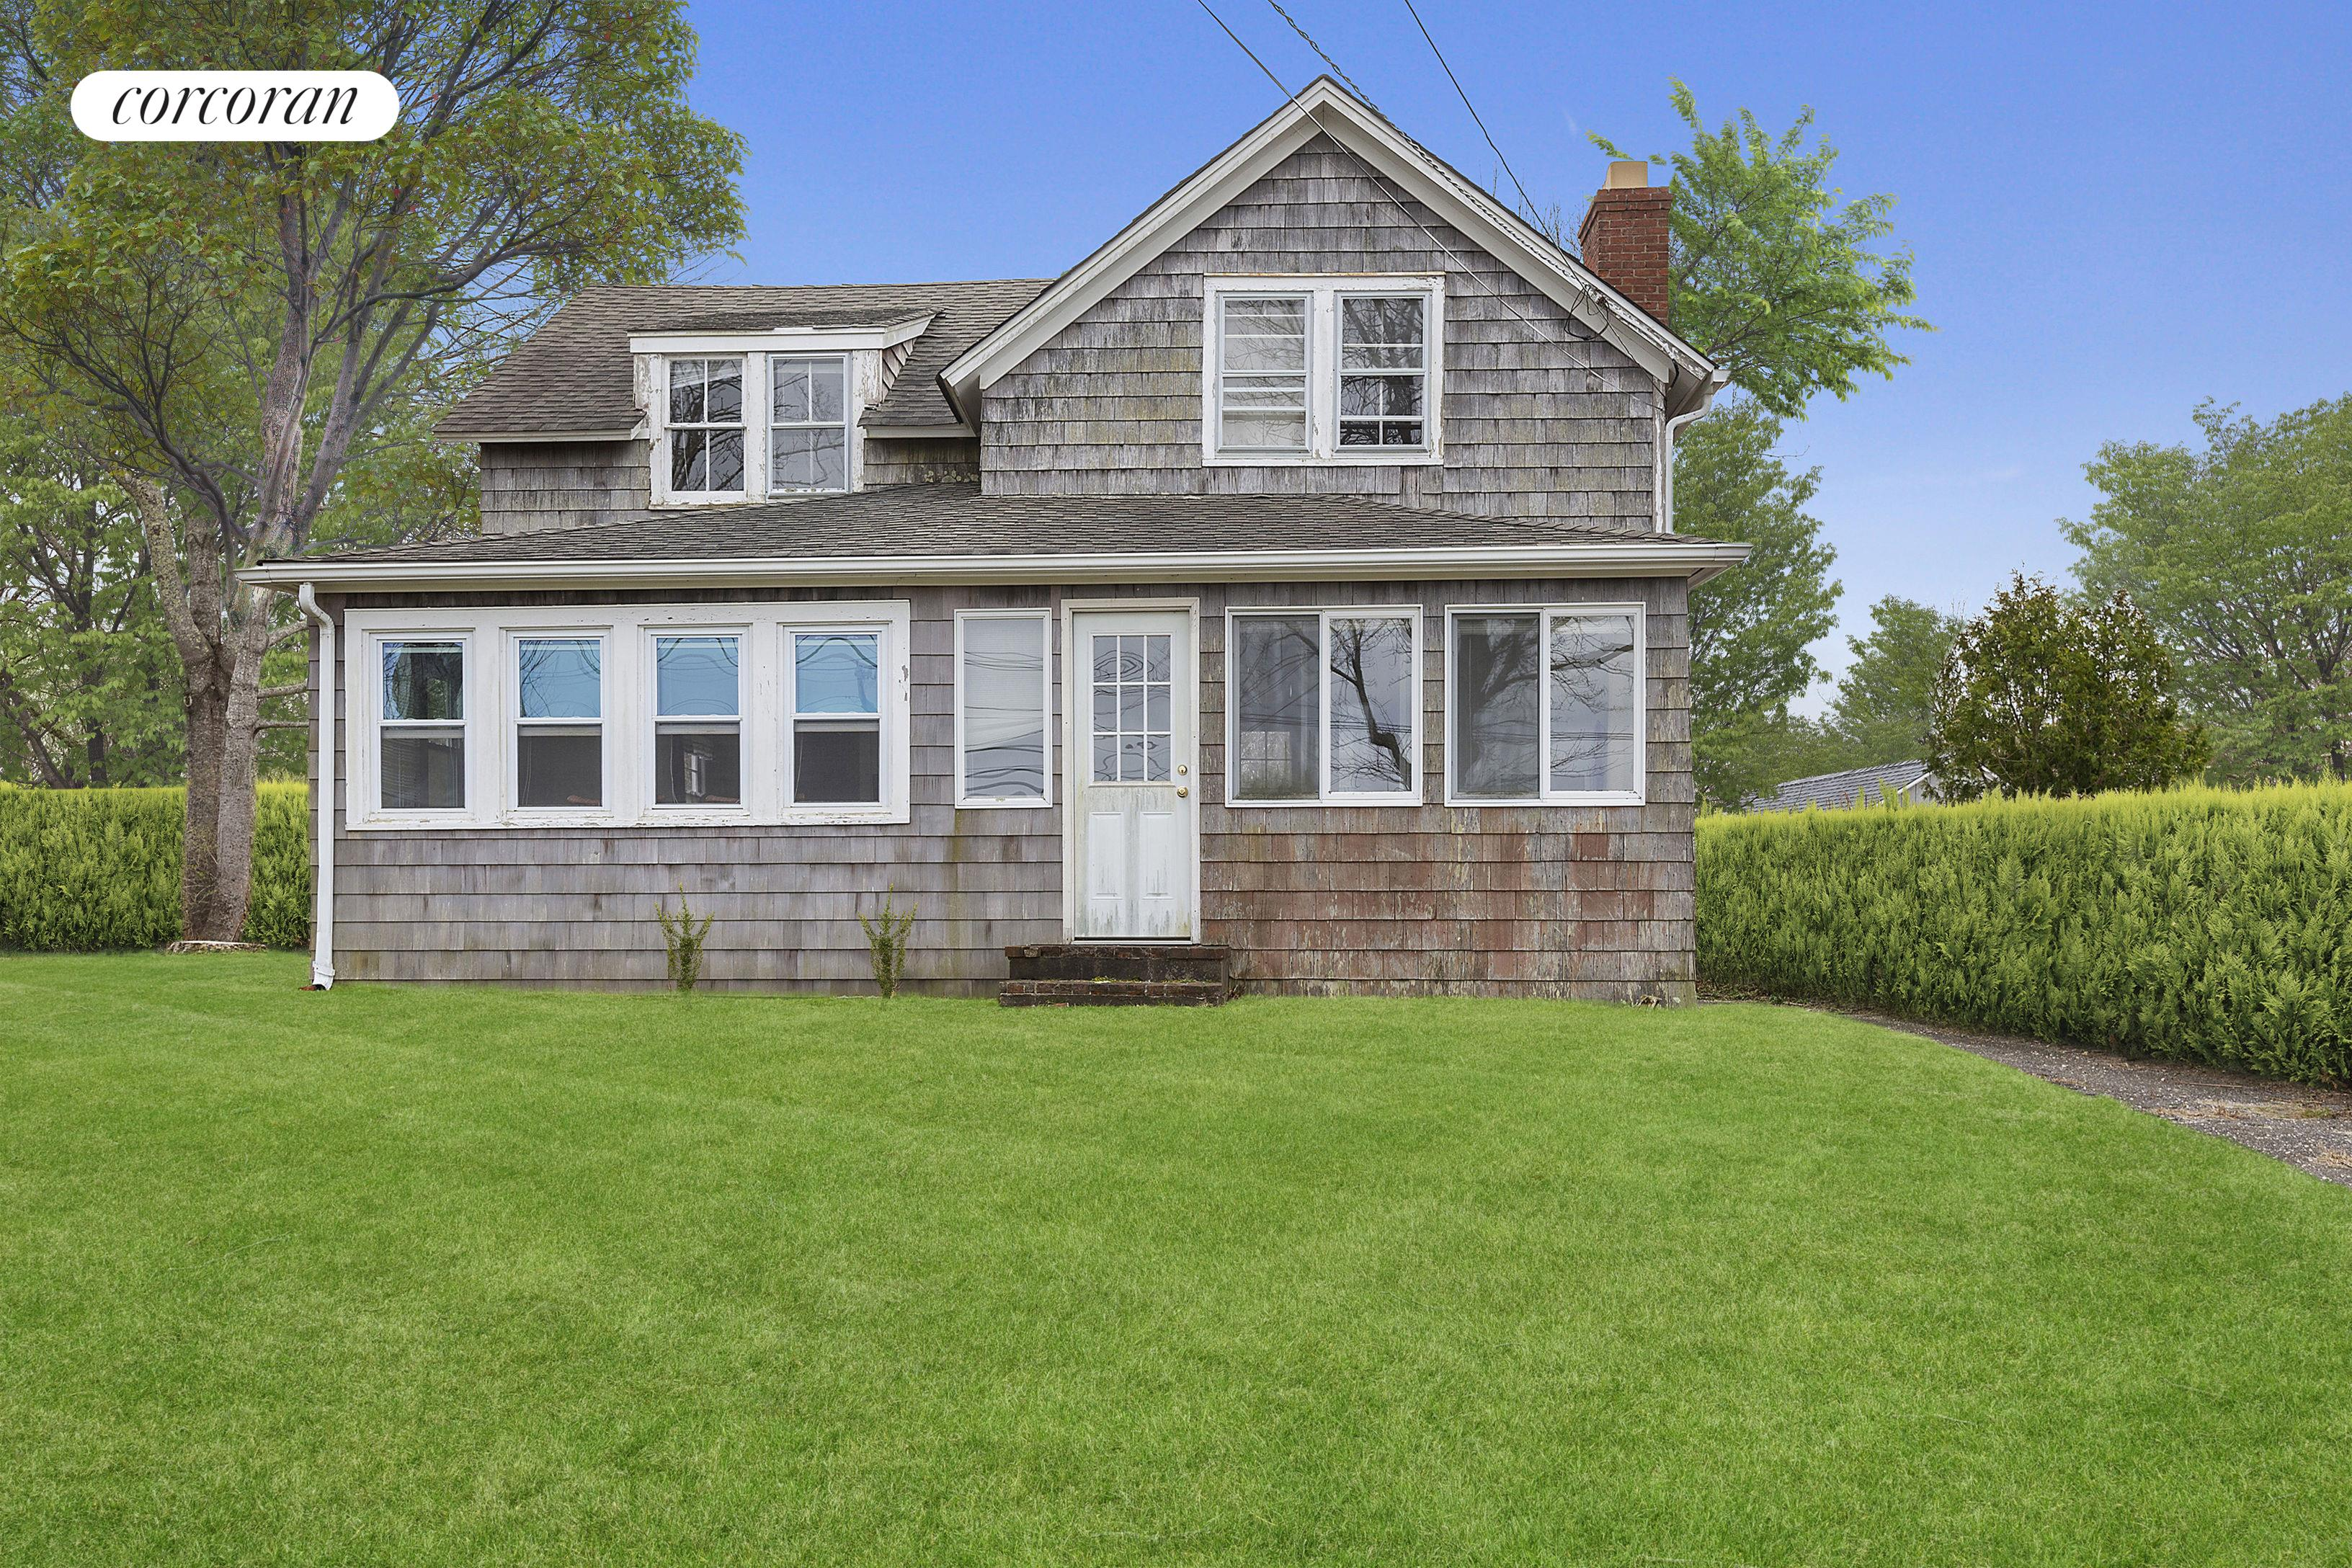 139 Sag Harbor Tpke, Select a Category